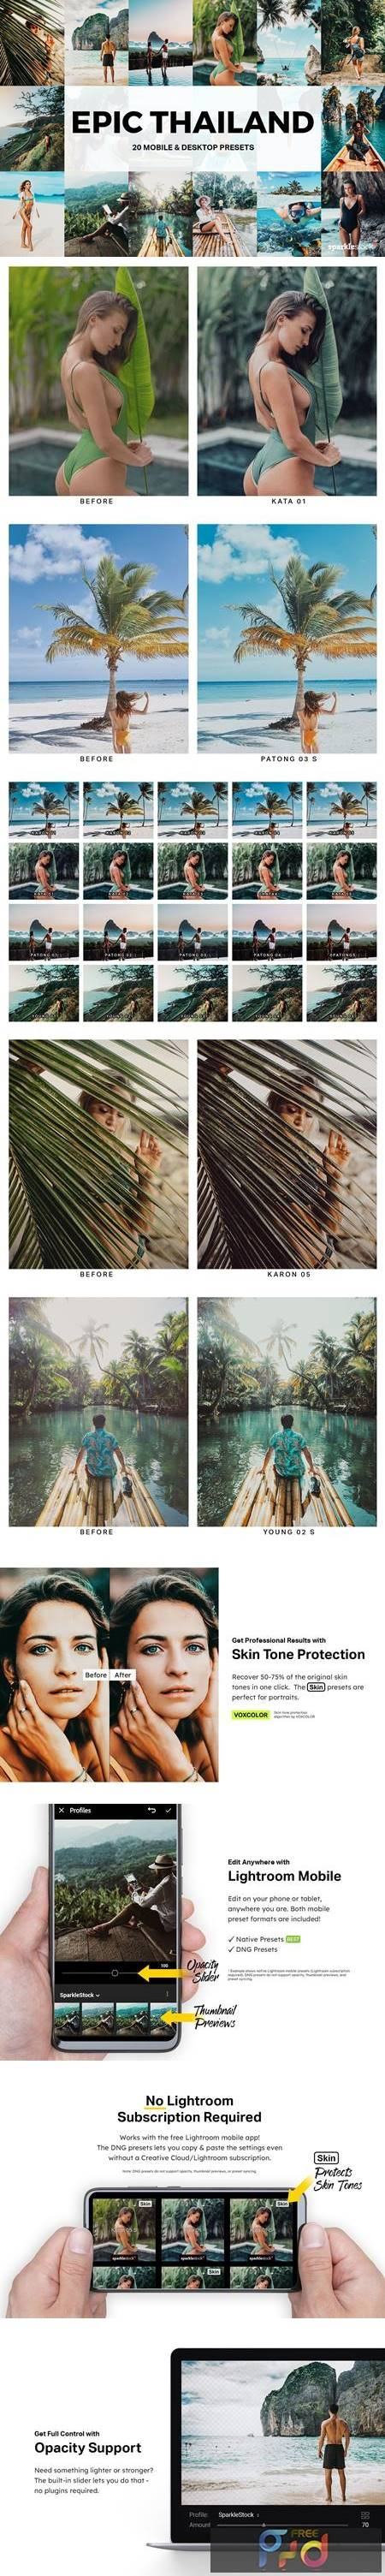 20 Epic Thailand Lightroom Presets and LUTs Q92CY76 1